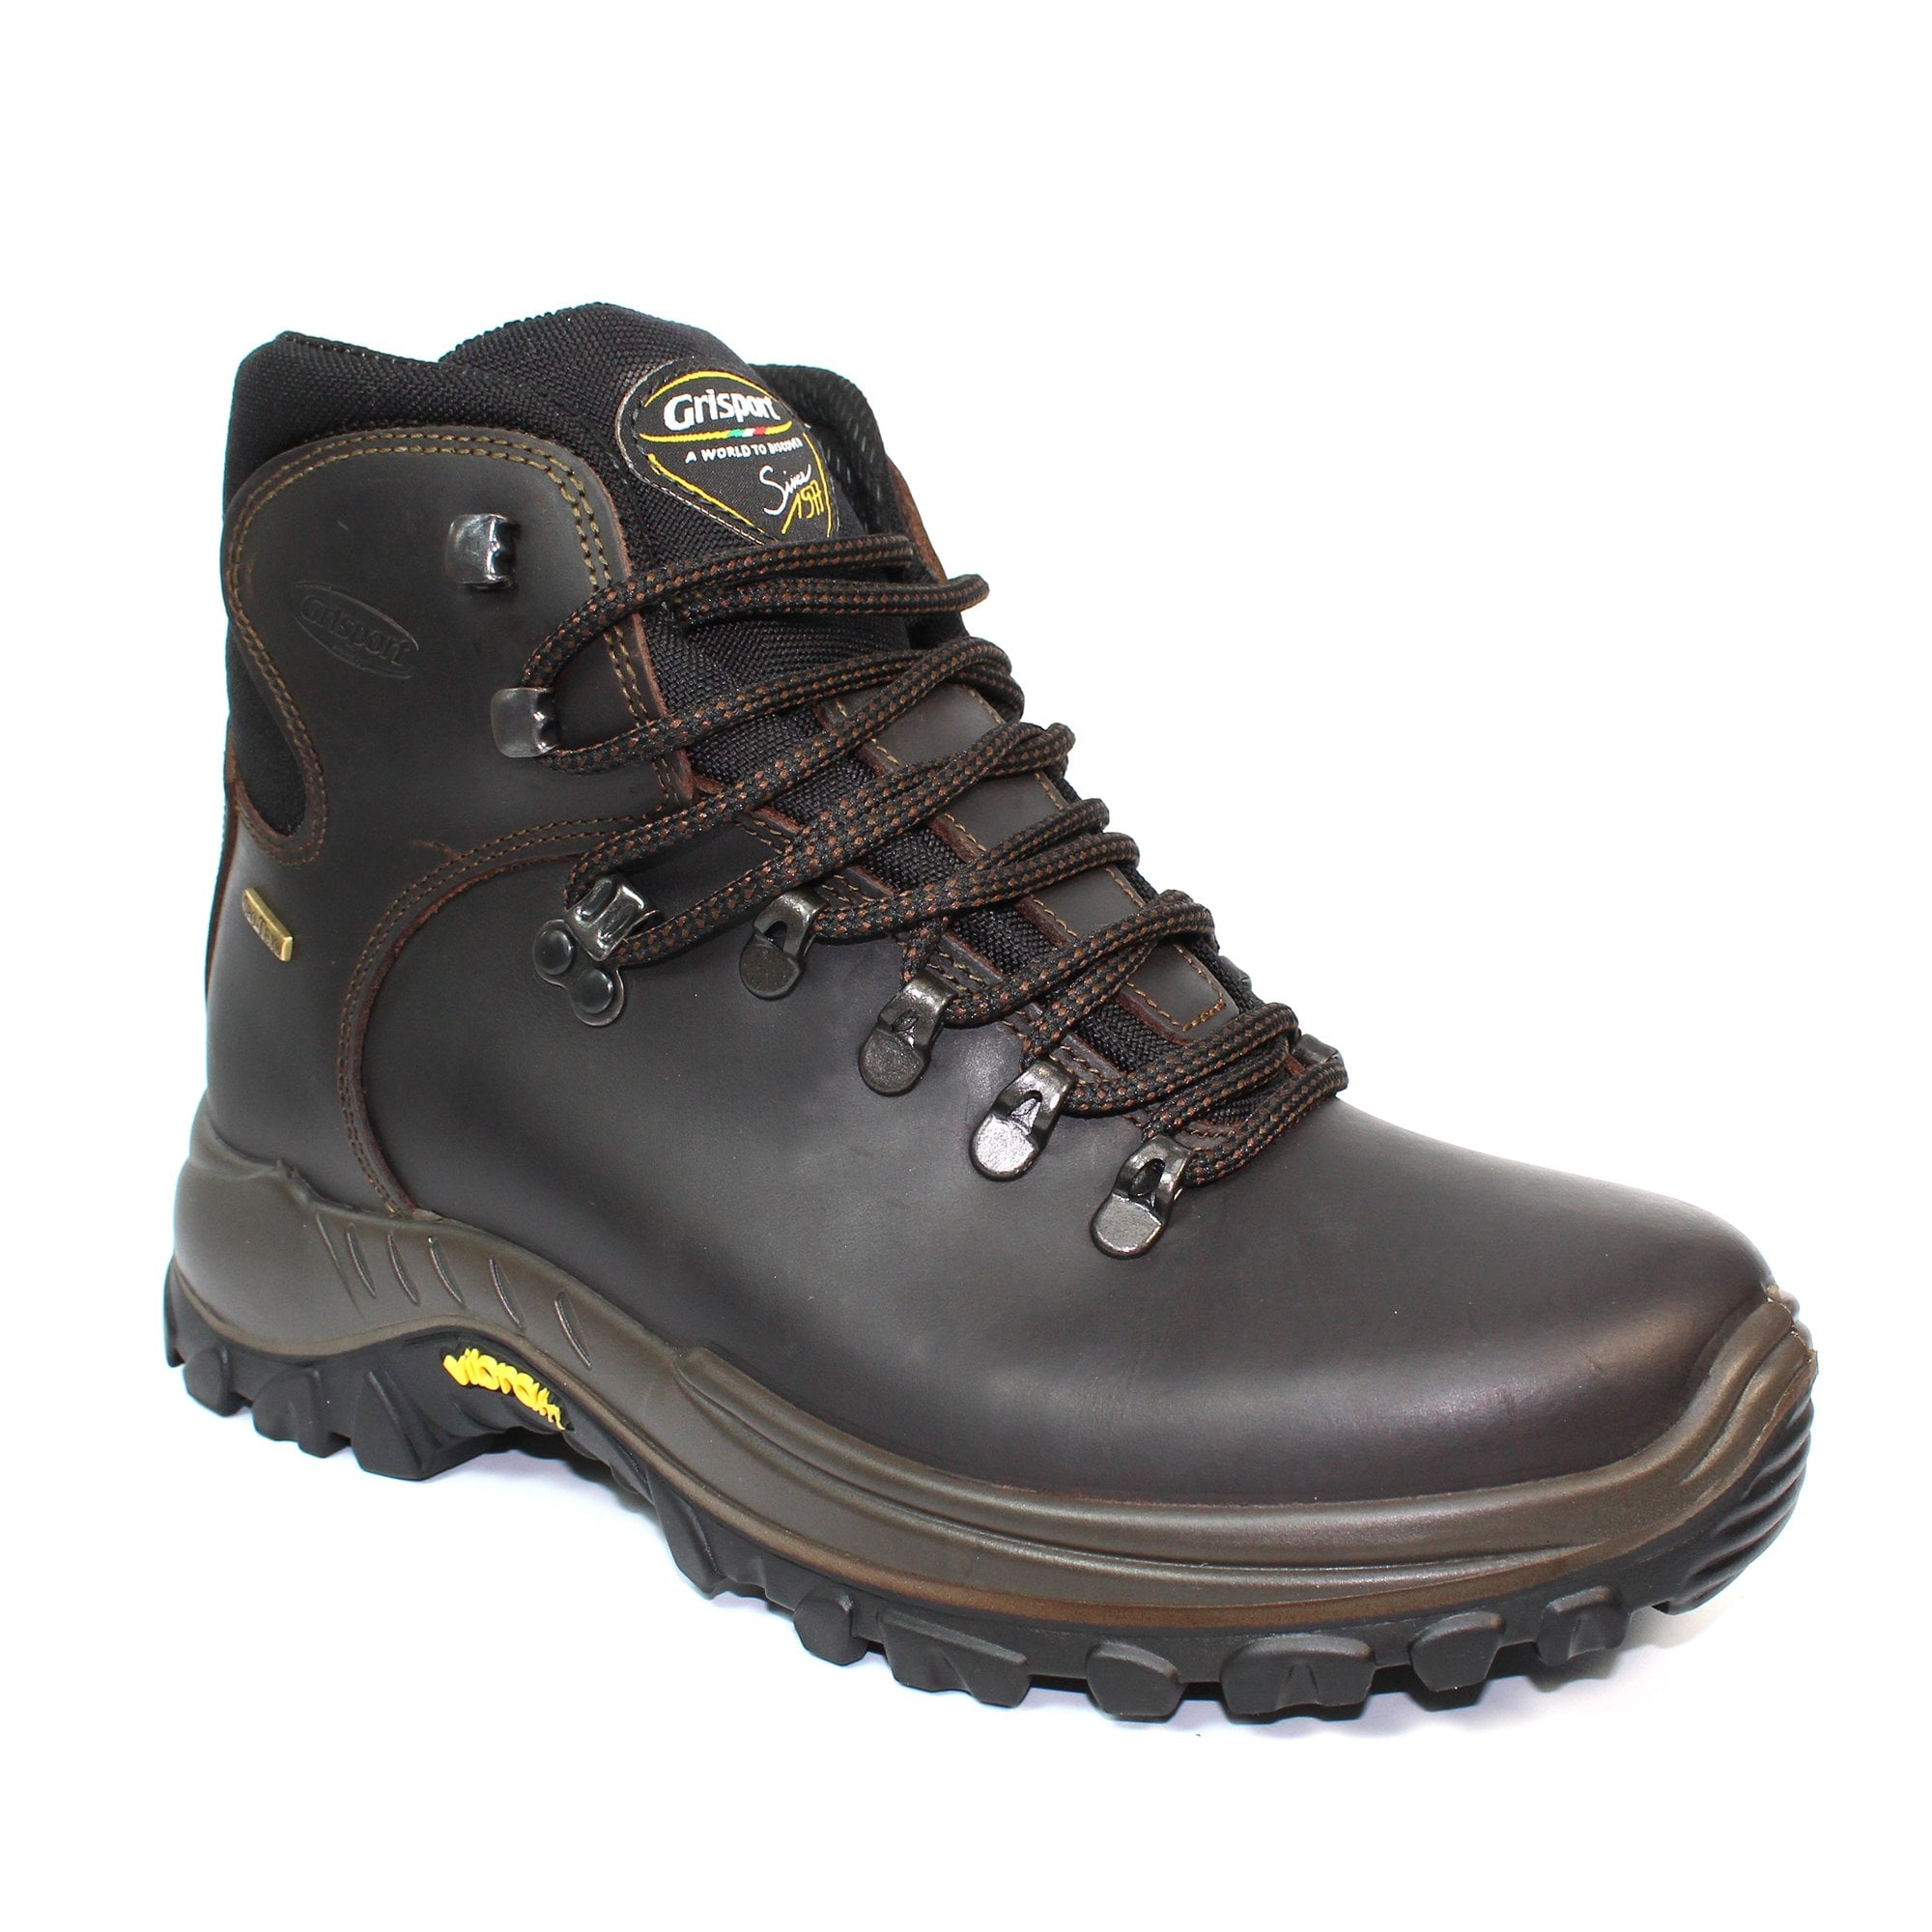 Grisport Fuse LEATHER WALKING HIKING BOOT